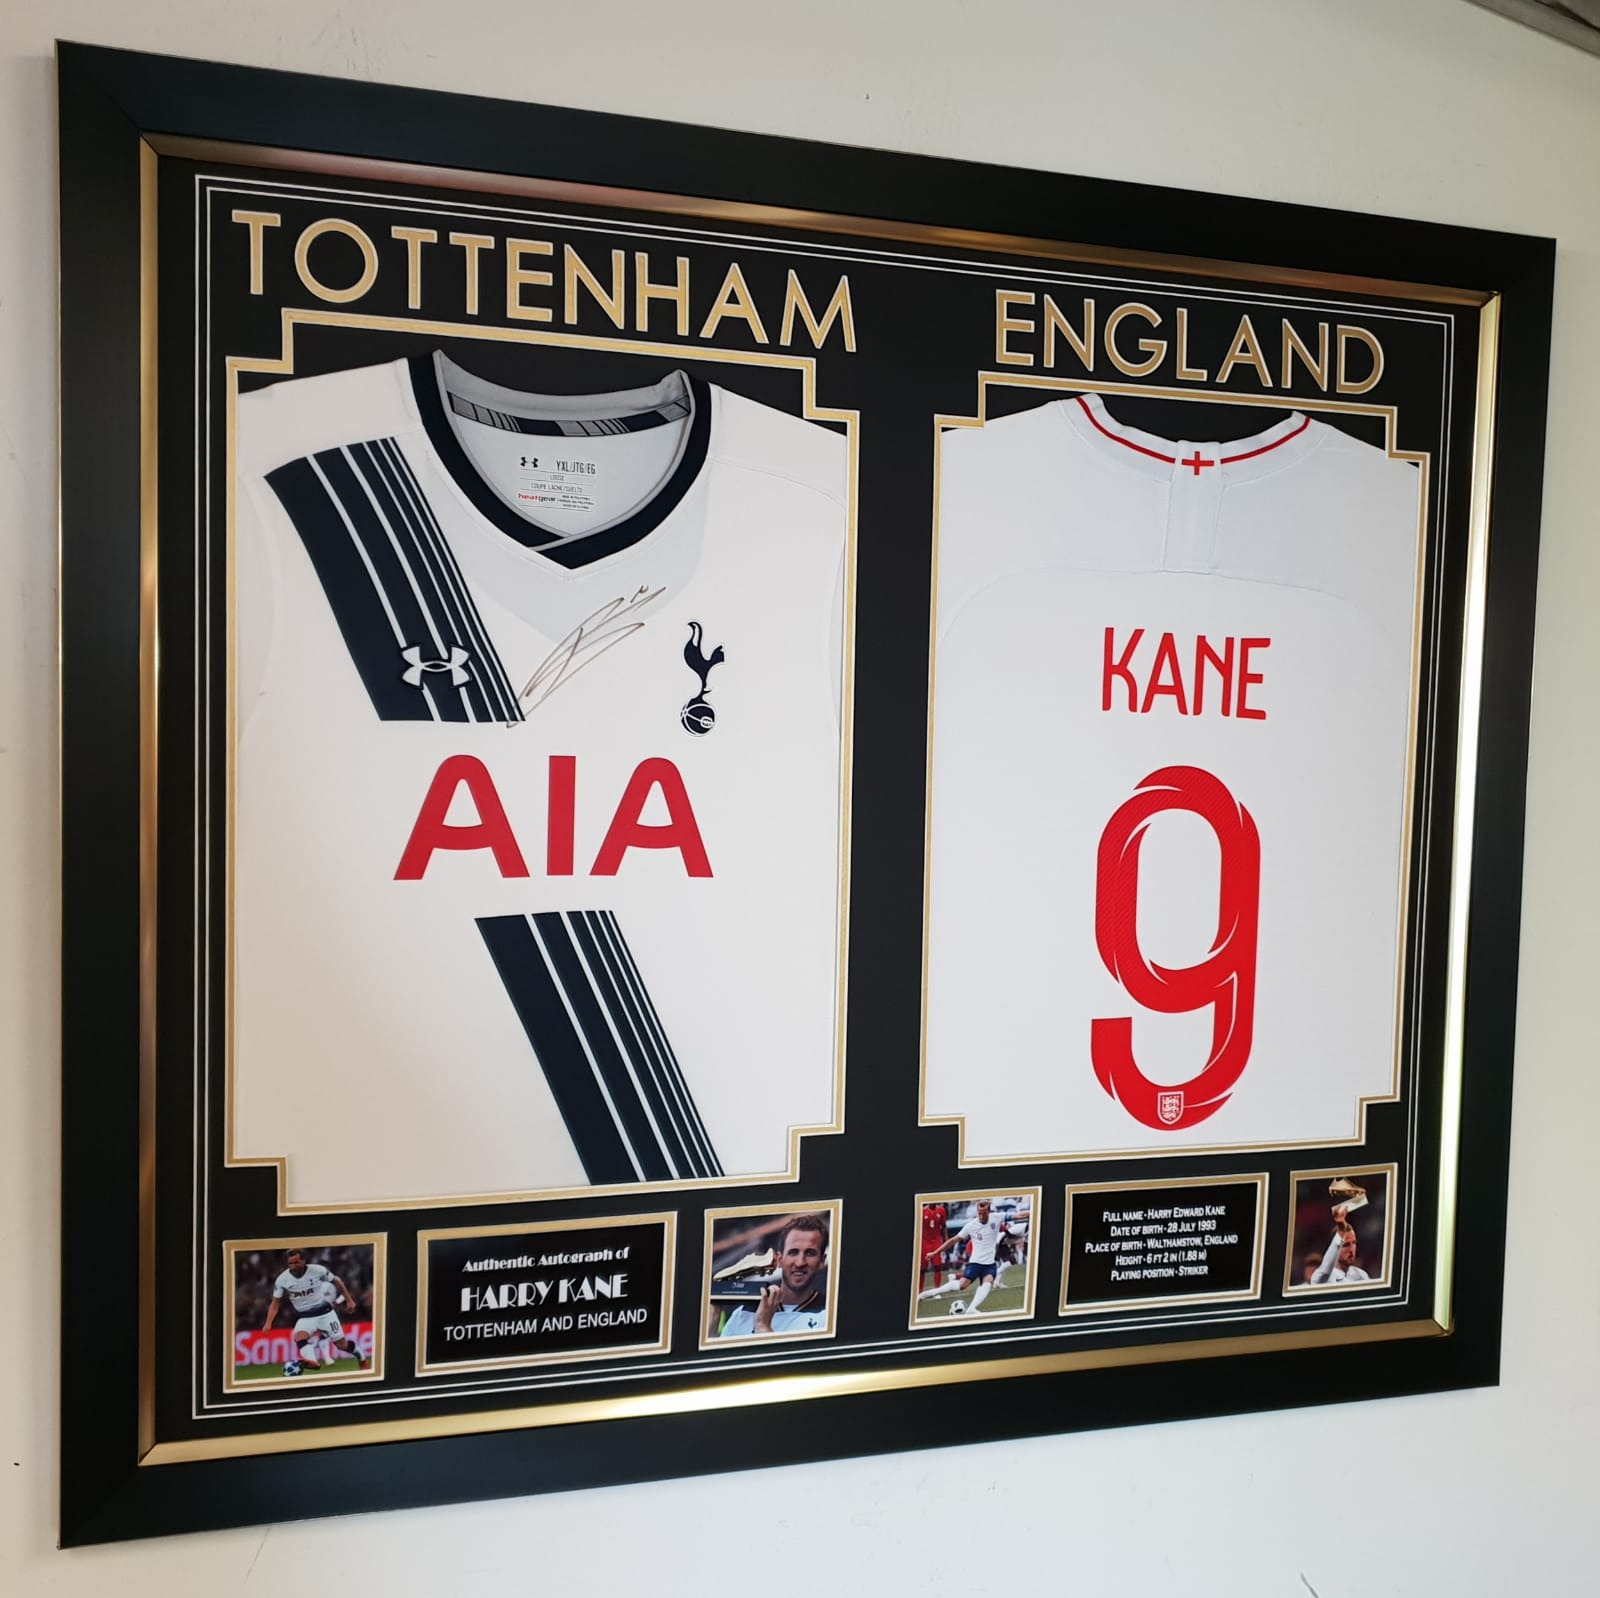 online store 91395 6a948 Harry Kane signed Tottenham Hotspur Shirt and Framed with Kane England  Shirt.